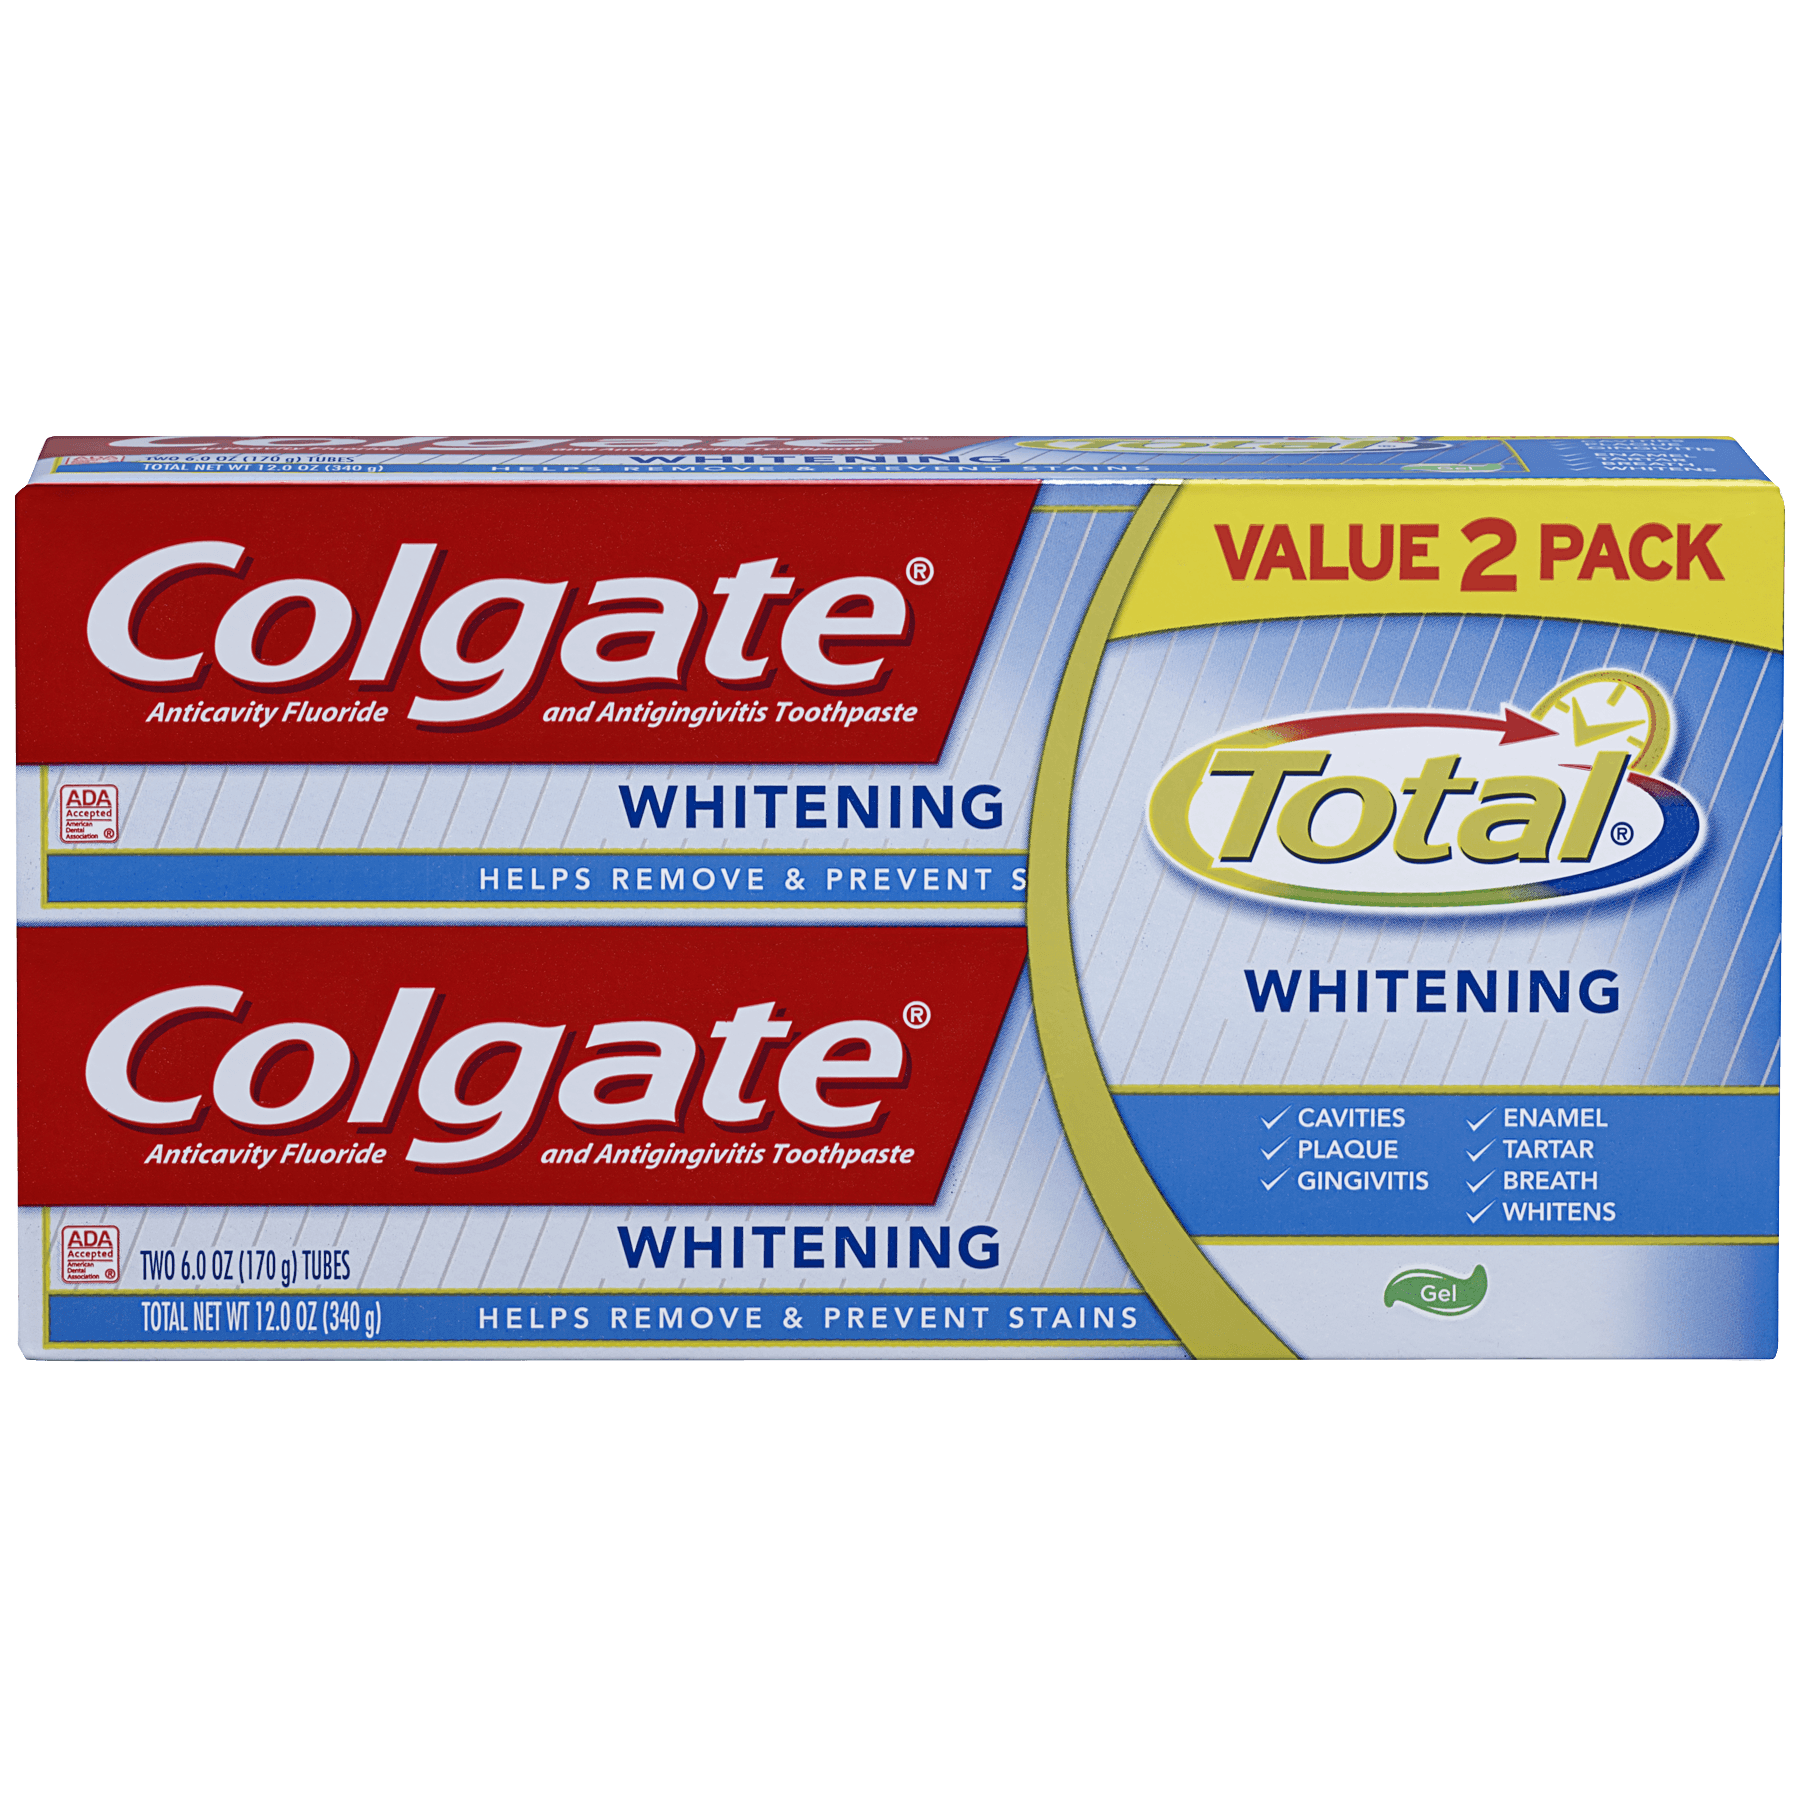 Colgate Total Whitening Gel Toothpaste - 6 oz (Twin Pack)